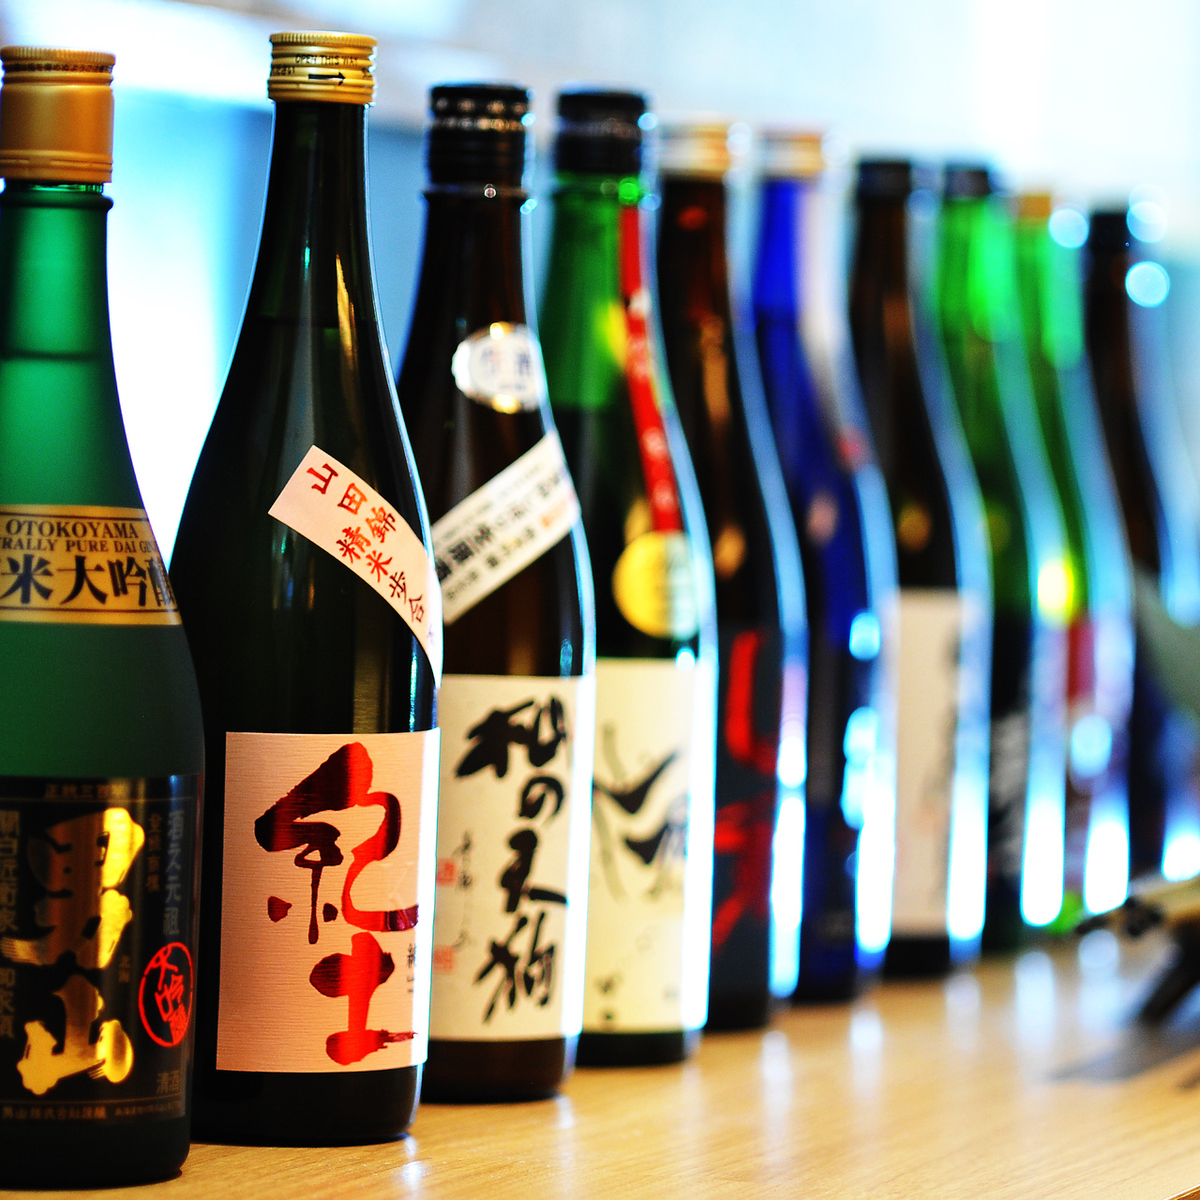 30 delicious sake brought by the four seasons throughout the country and grace